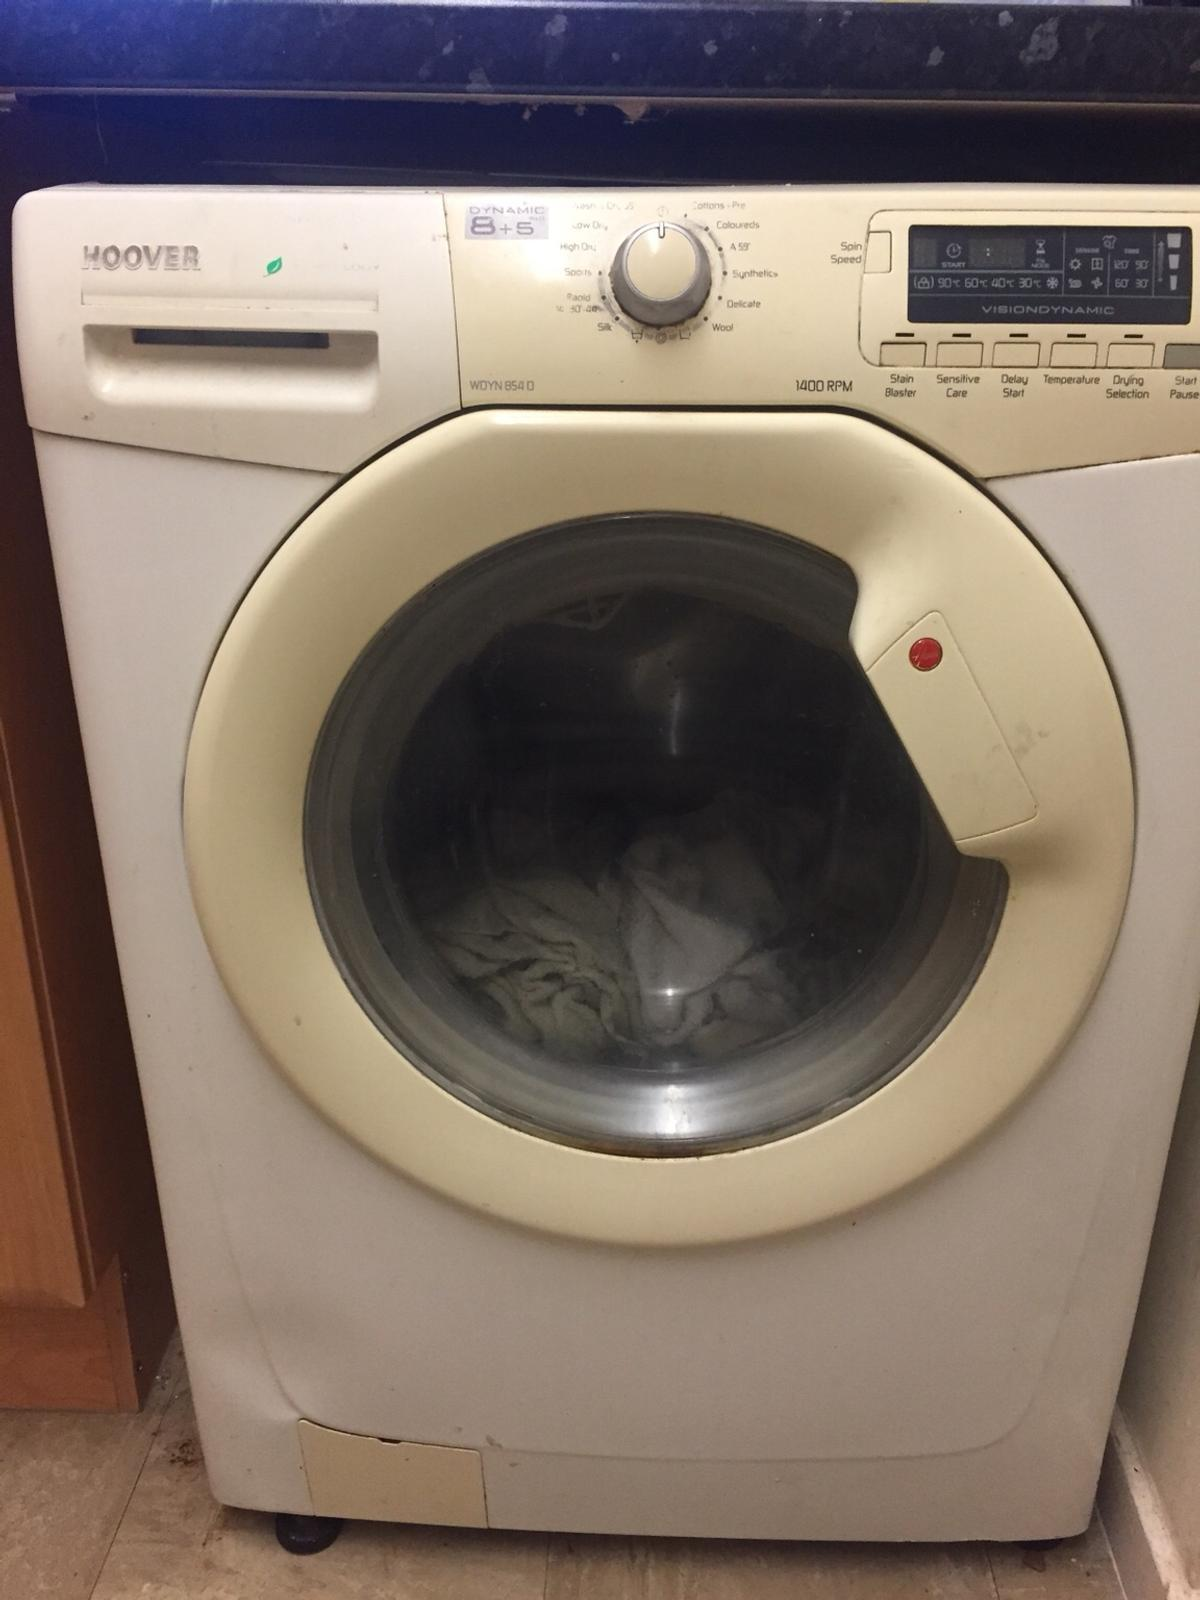 Hoover Washing Machine In Wv11 Wolverhampton For 25 00 For Sale Shpock